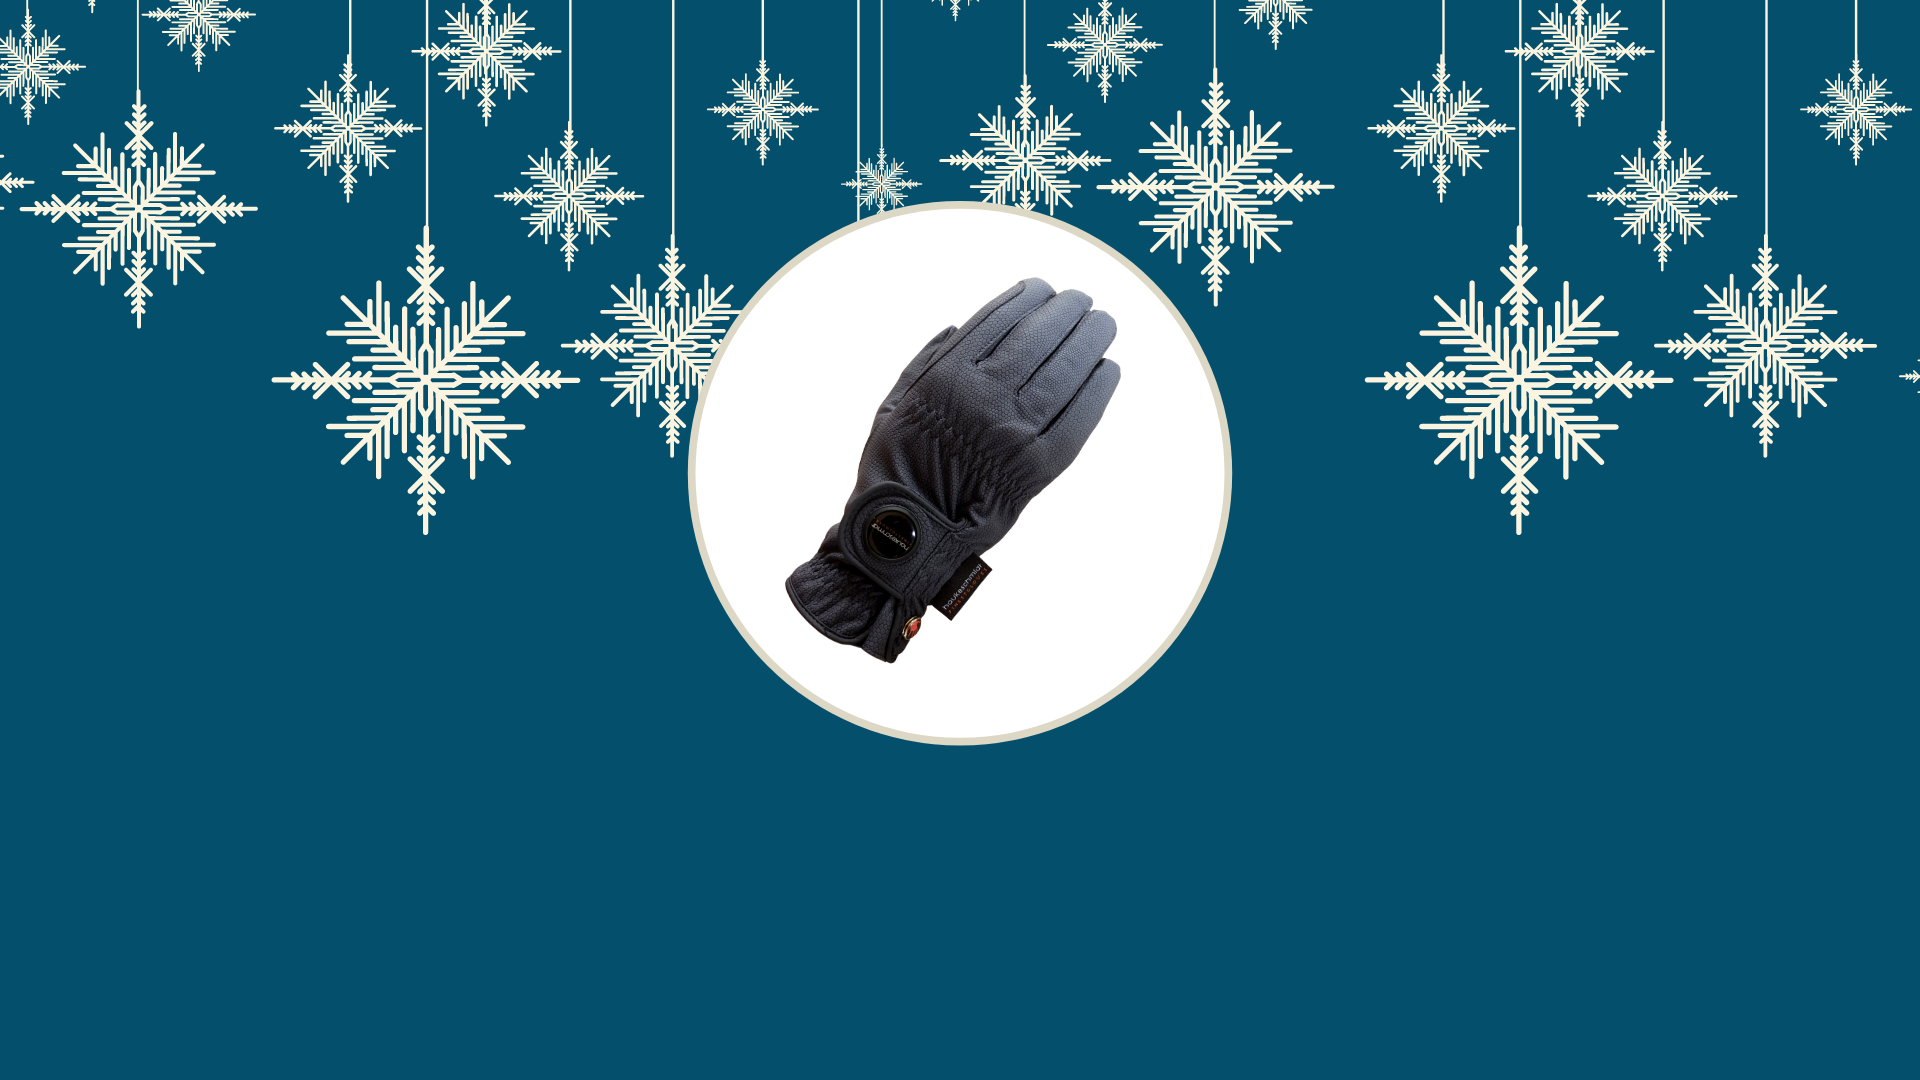 Help keep your hands warm this winter with the Nordic Dream Riding Glove, available now